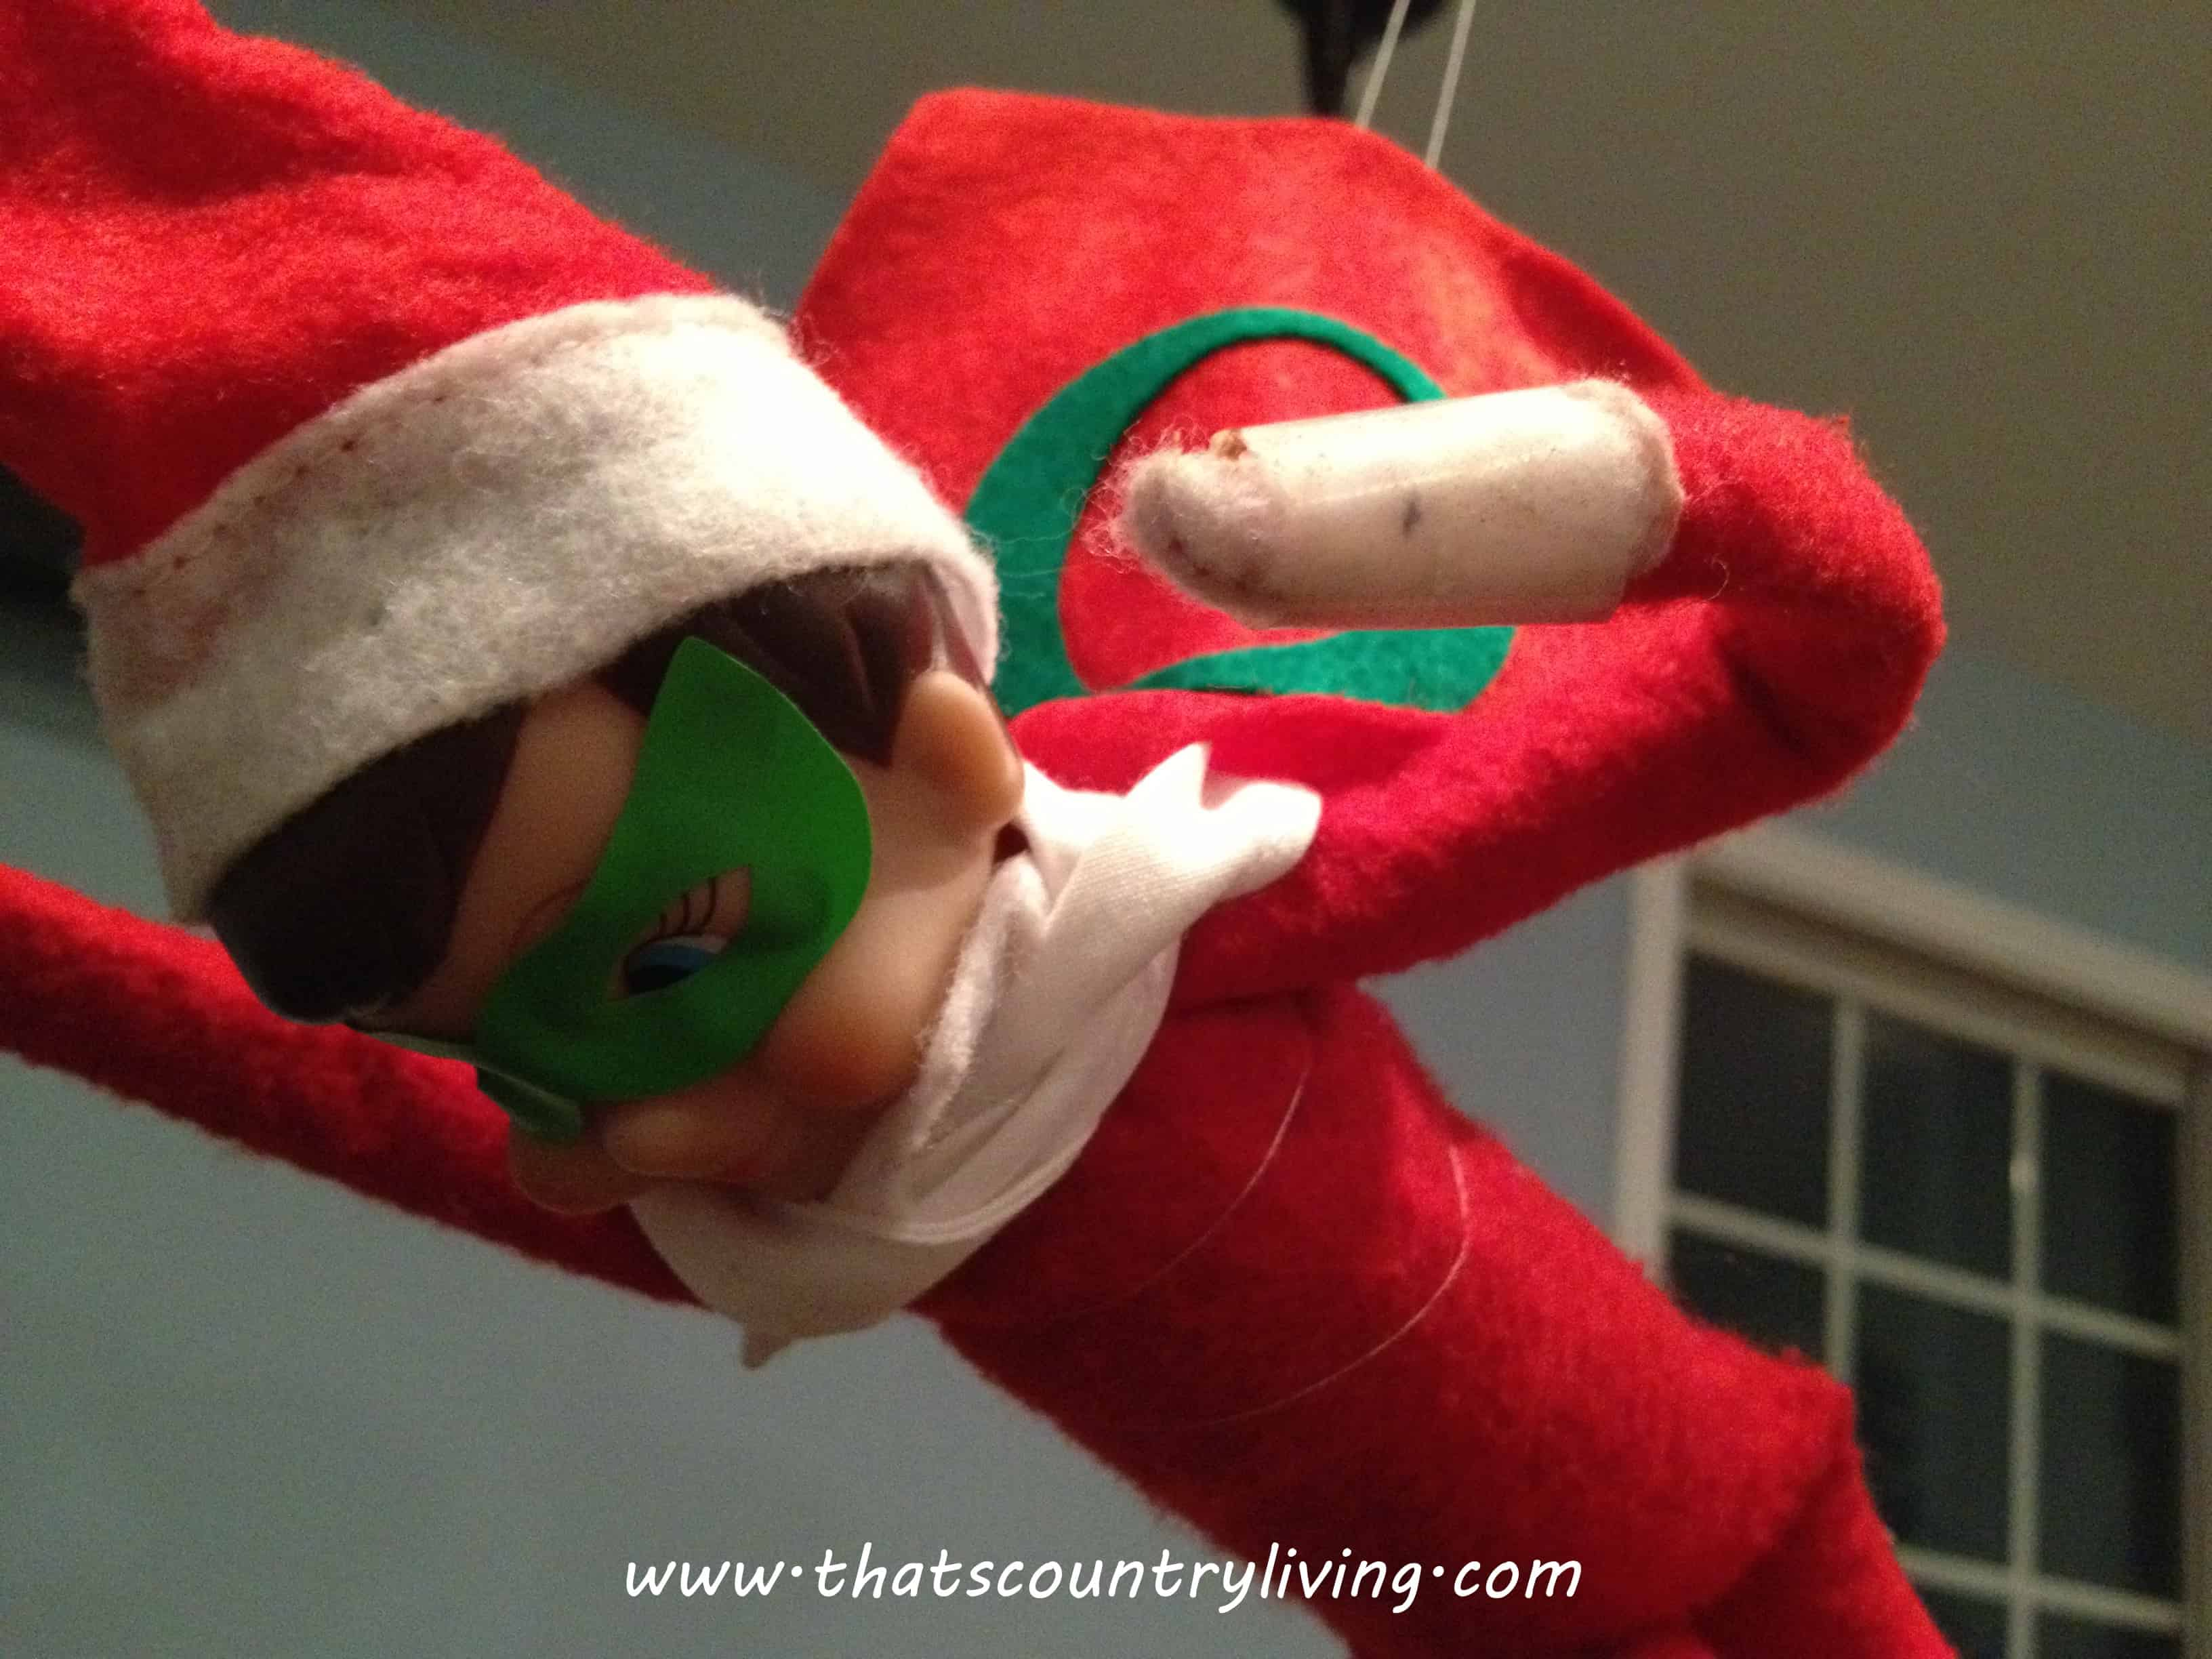 Dec 03,  · If you don't have an elf, scroll to the bottom and you can find my affiliate link to Amazon to find an Elf on the Shelf & more. MY LATEST VIDEOS When the kids wake us up to tell us that our elf forgot to move – we need to be quick on our feet to think of a reason why.